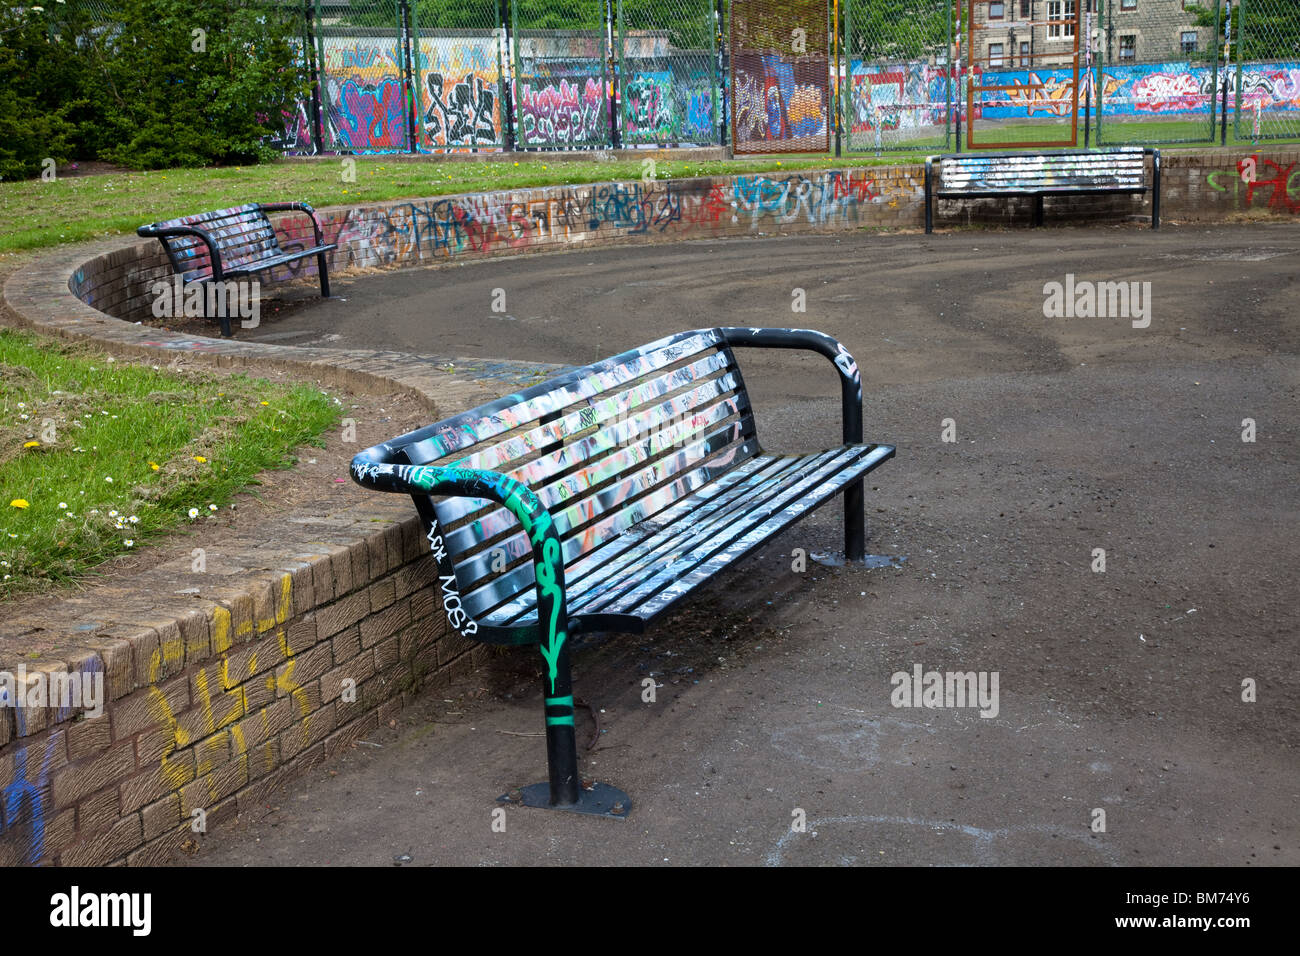 Graffiti wall chelmsford - Legal Graffiti Wall And Metal Framed Bench Around Mains Road Hilltown Dundee Dundee City